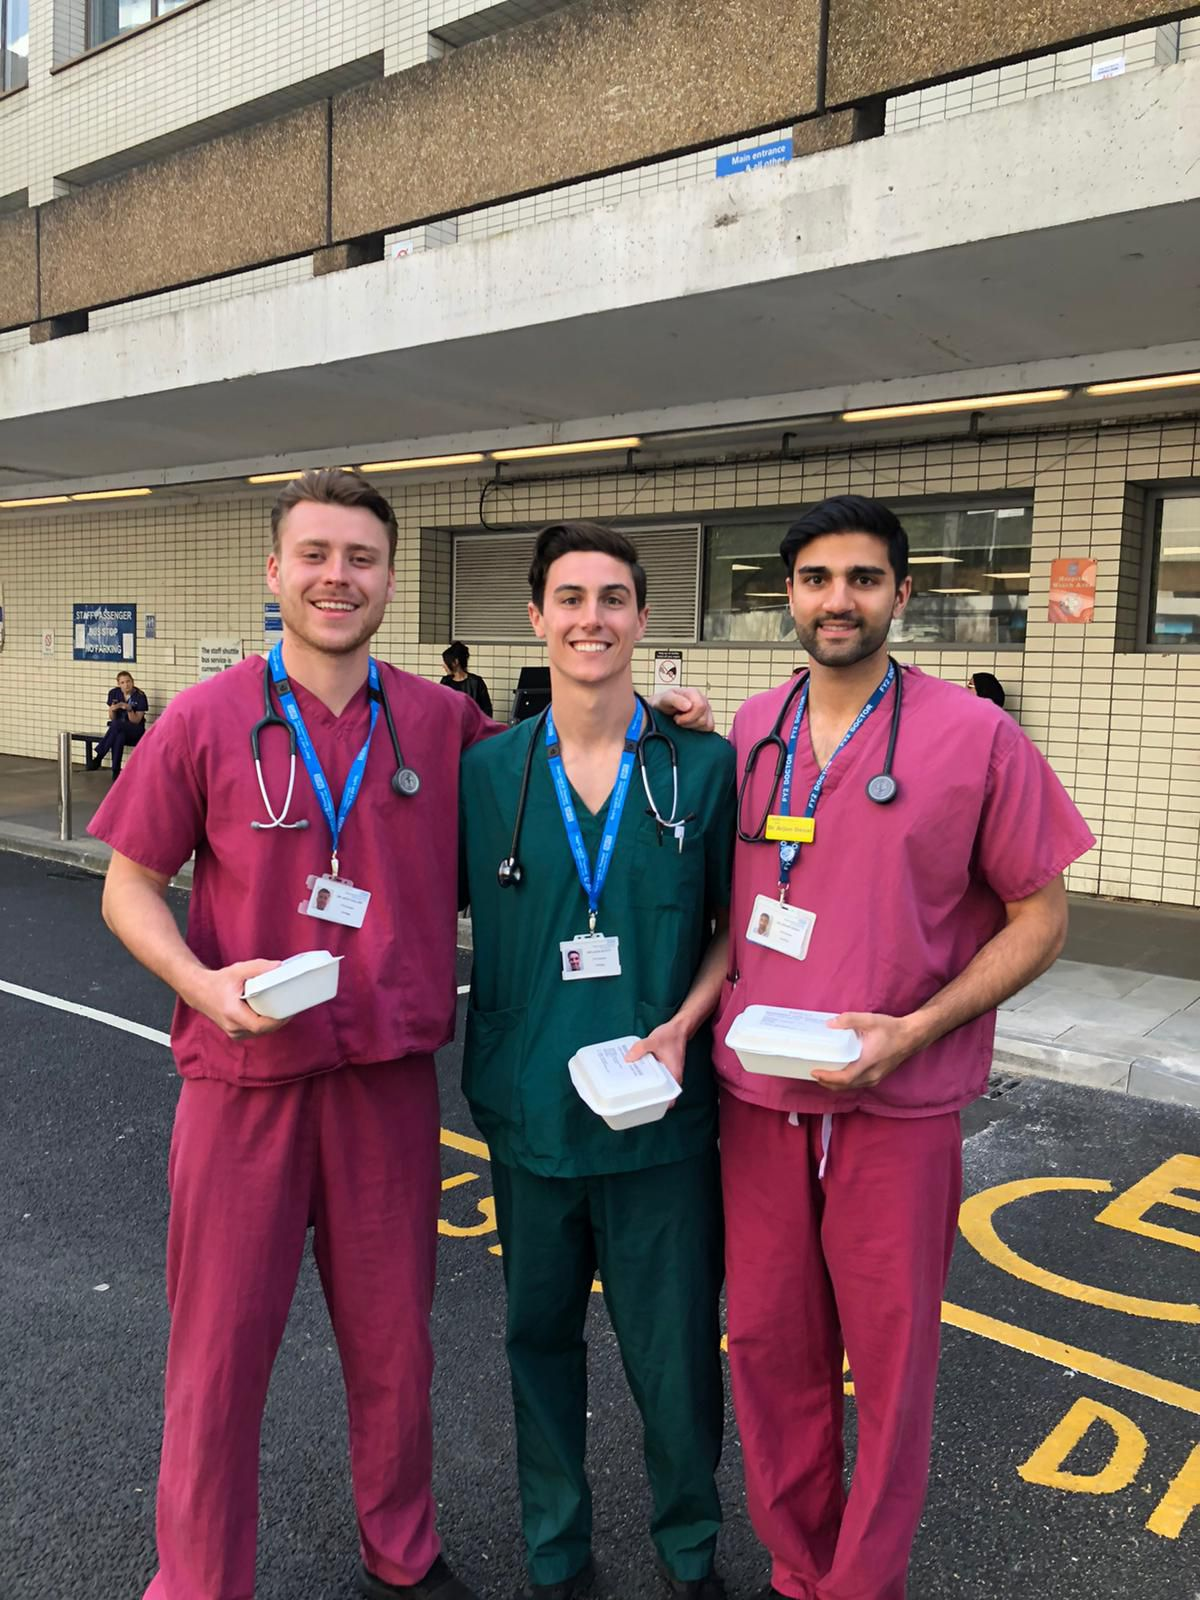 NHS staff doctors receive meals from Deliver Aid — meals prepared by some of London's best chefs